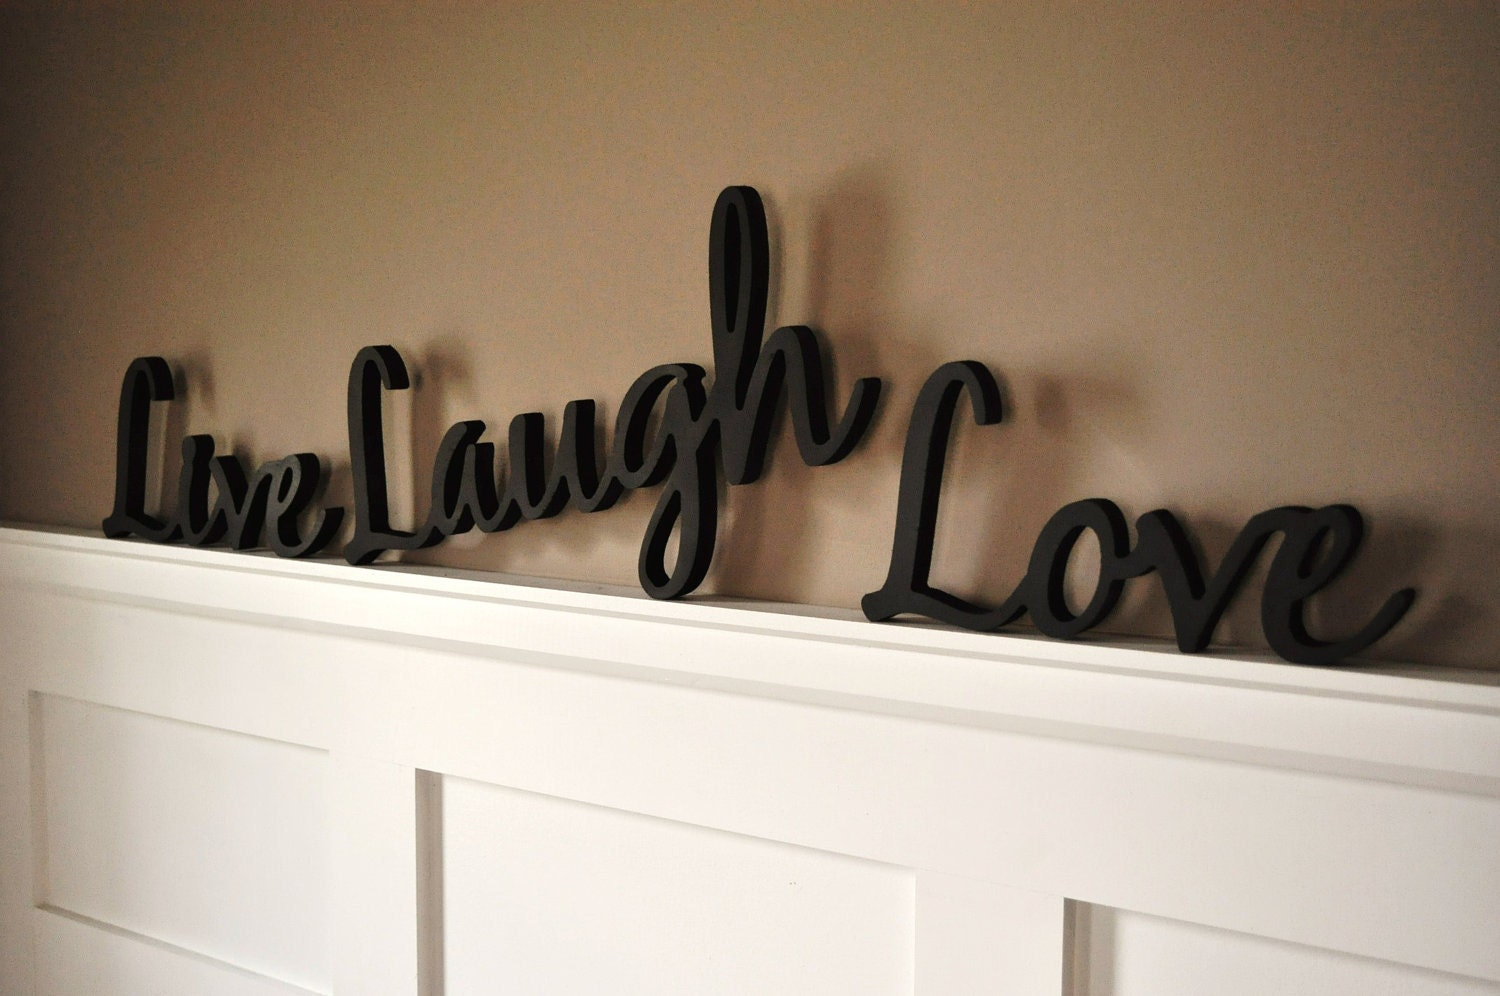 Word Art Wood 3d Cutout Live Laugh Love Set By Mrc